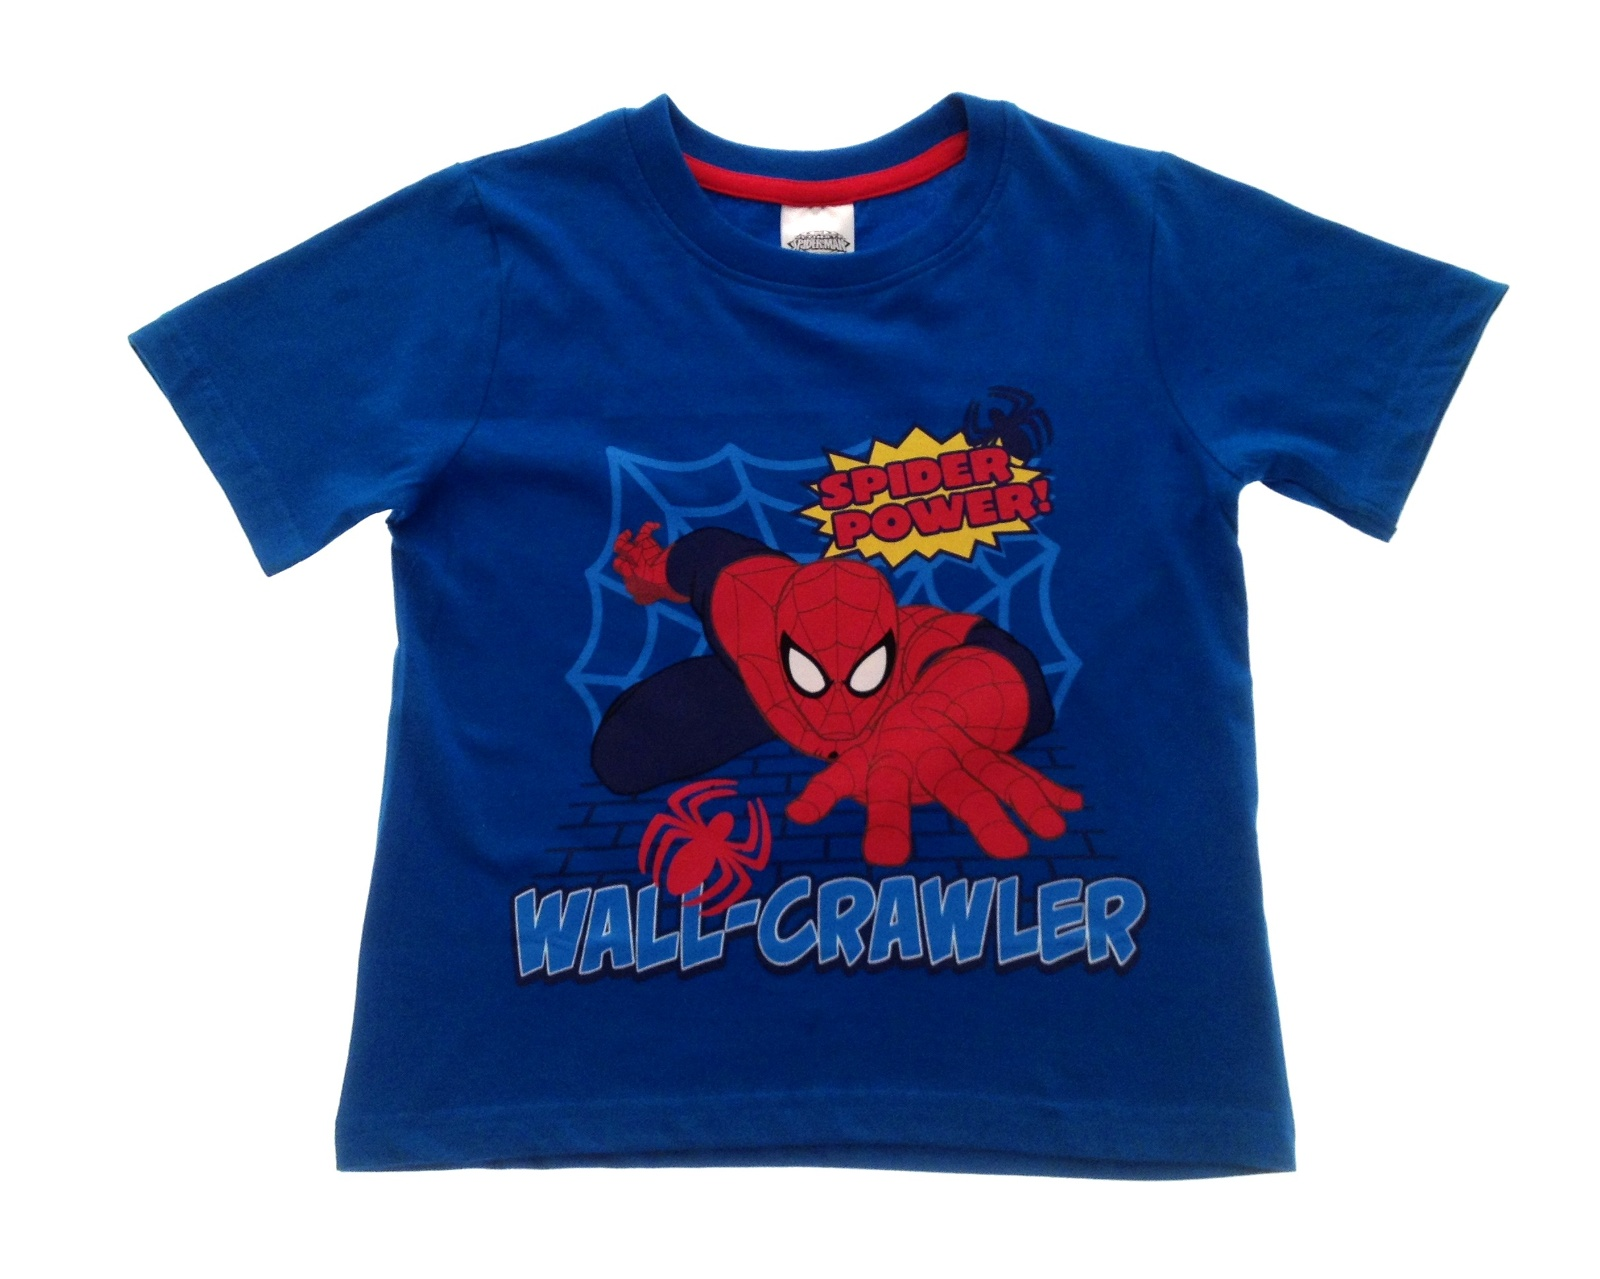 dff2e0ea2 Marvel Ultimate Spiderman Boys Childrens Clothing T Shirt Top Size ...